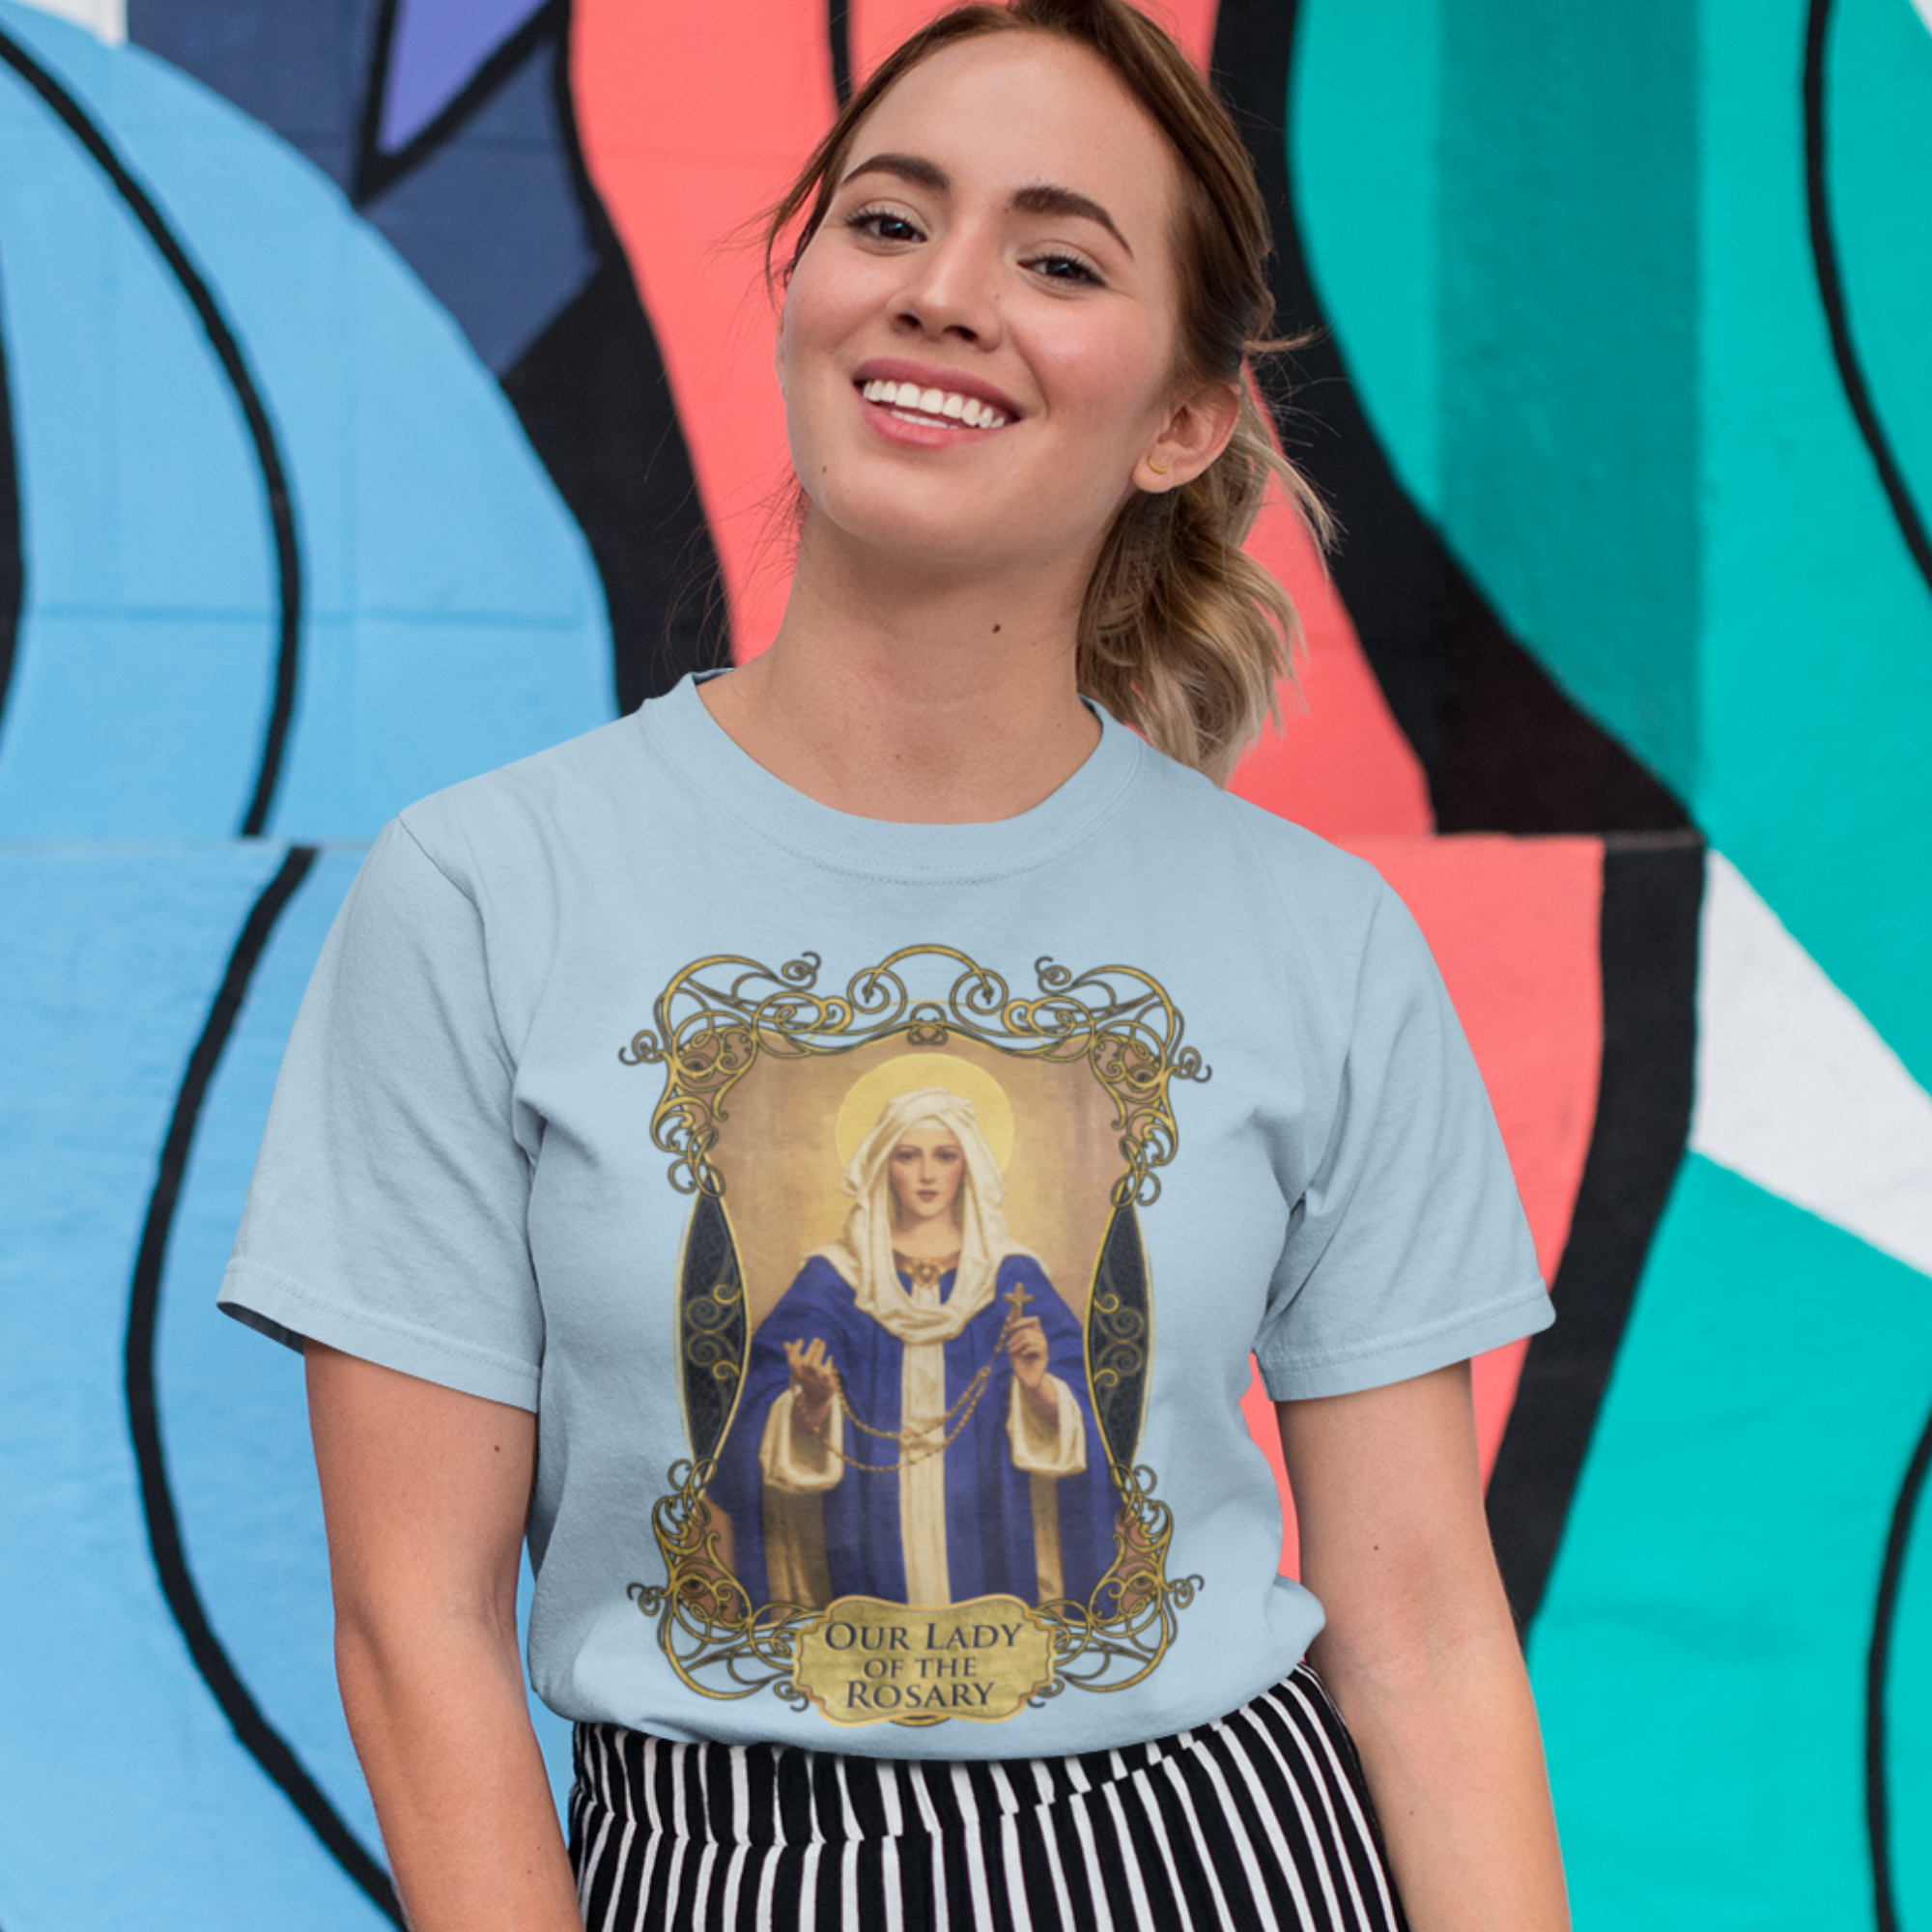 Our Lady of the Rosary T-Shirt